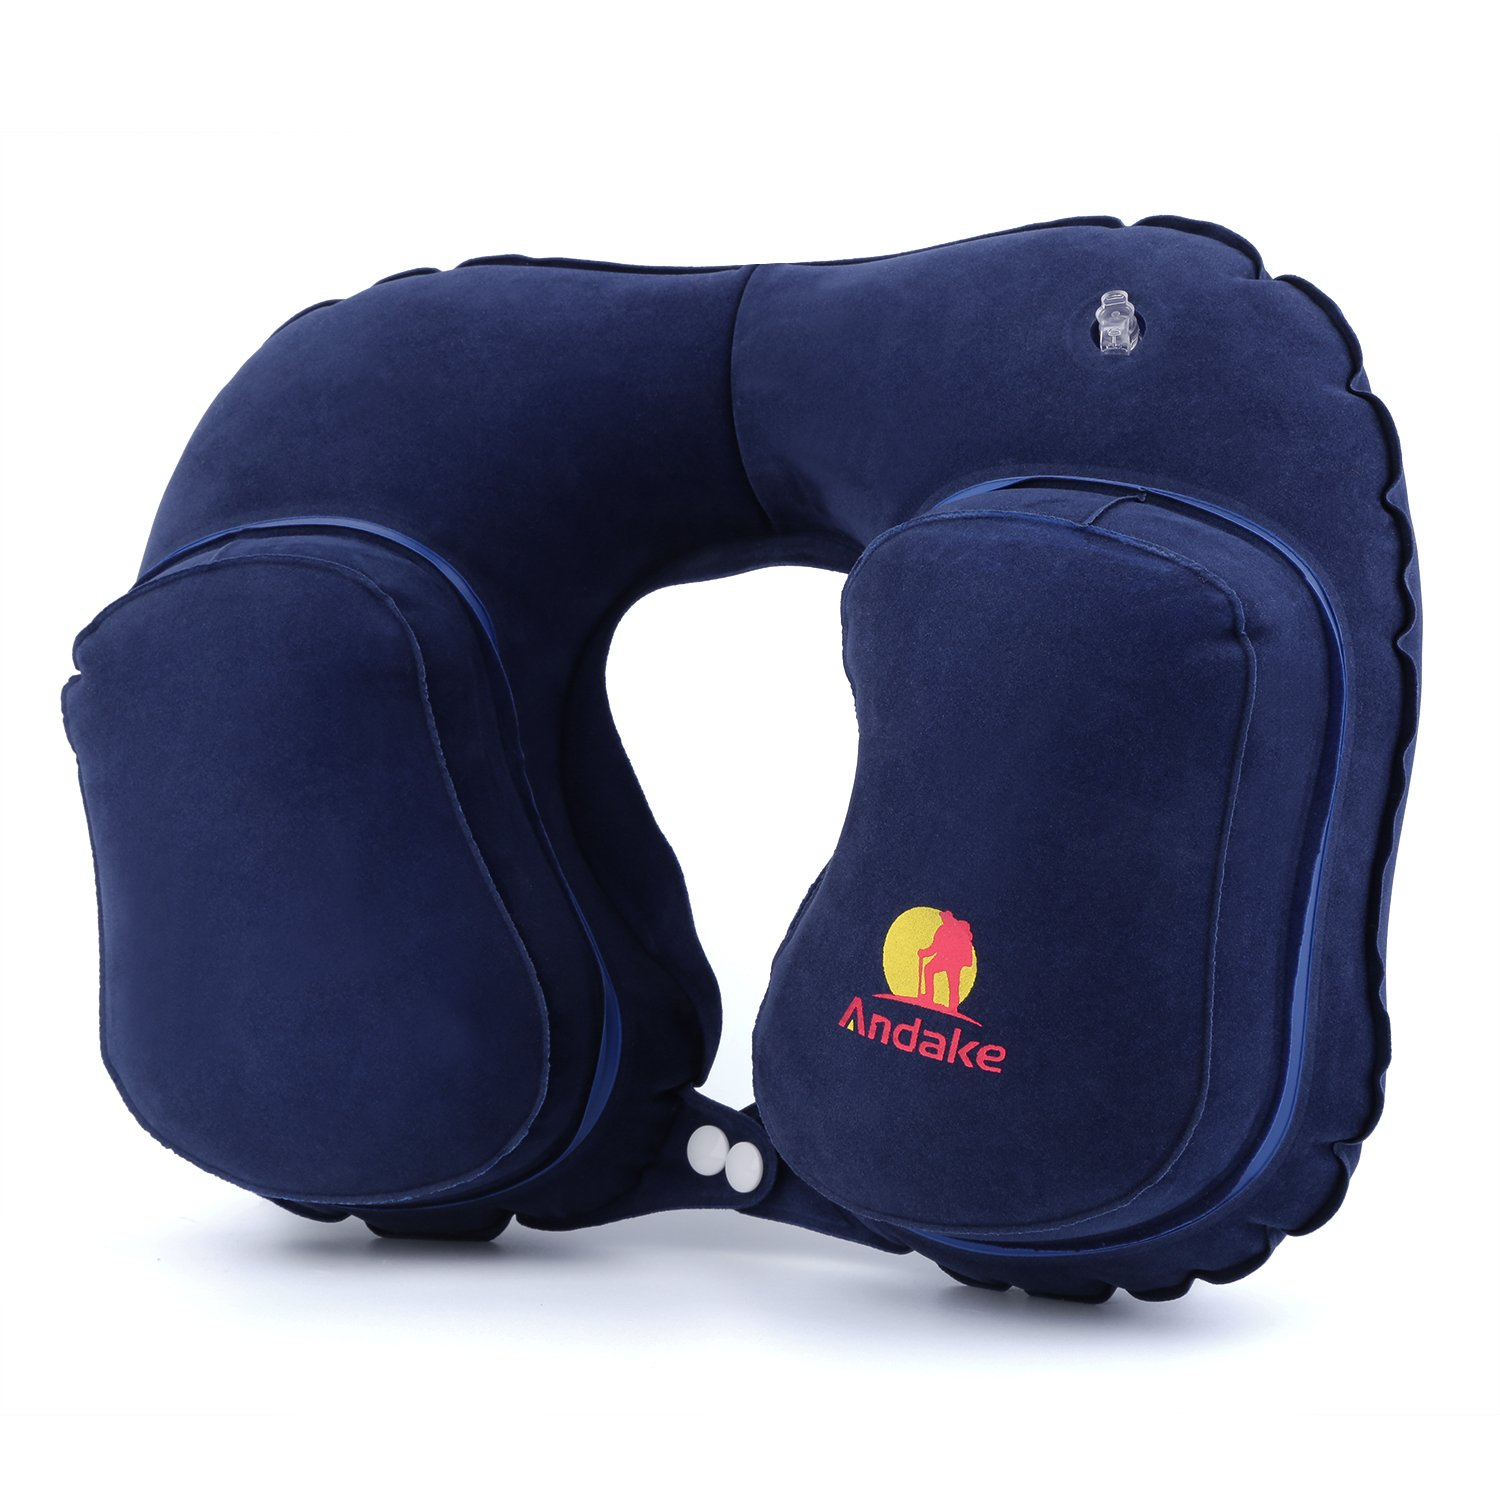 Andake Travel Pillow Neck Inflatable Pillow Best for Your